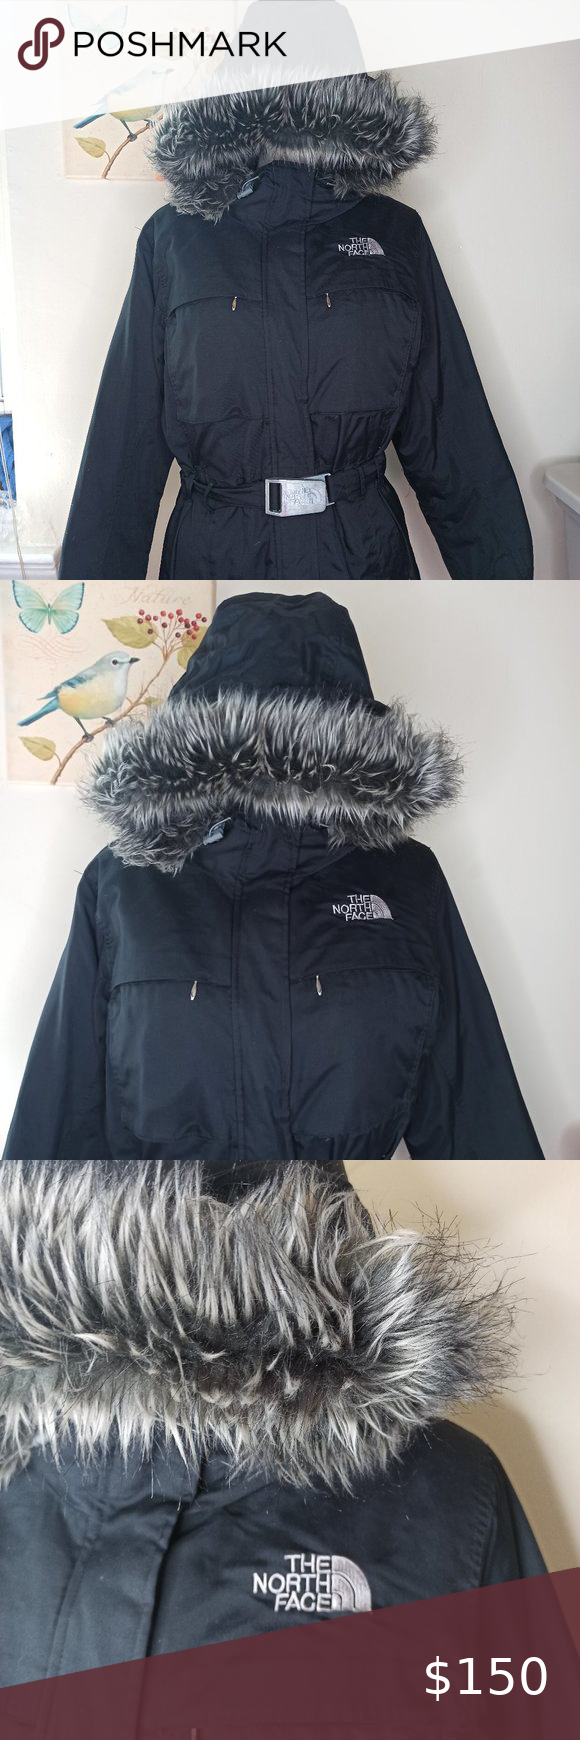 The North Face Greenland Hyvent Jacket Coat Fur The North Face Greenland Hyvent Faux Fur Trim Hood Black Jacket With B Coats Jackets Zipper Hood The North Face [ 1740 x 580 Pixel ]